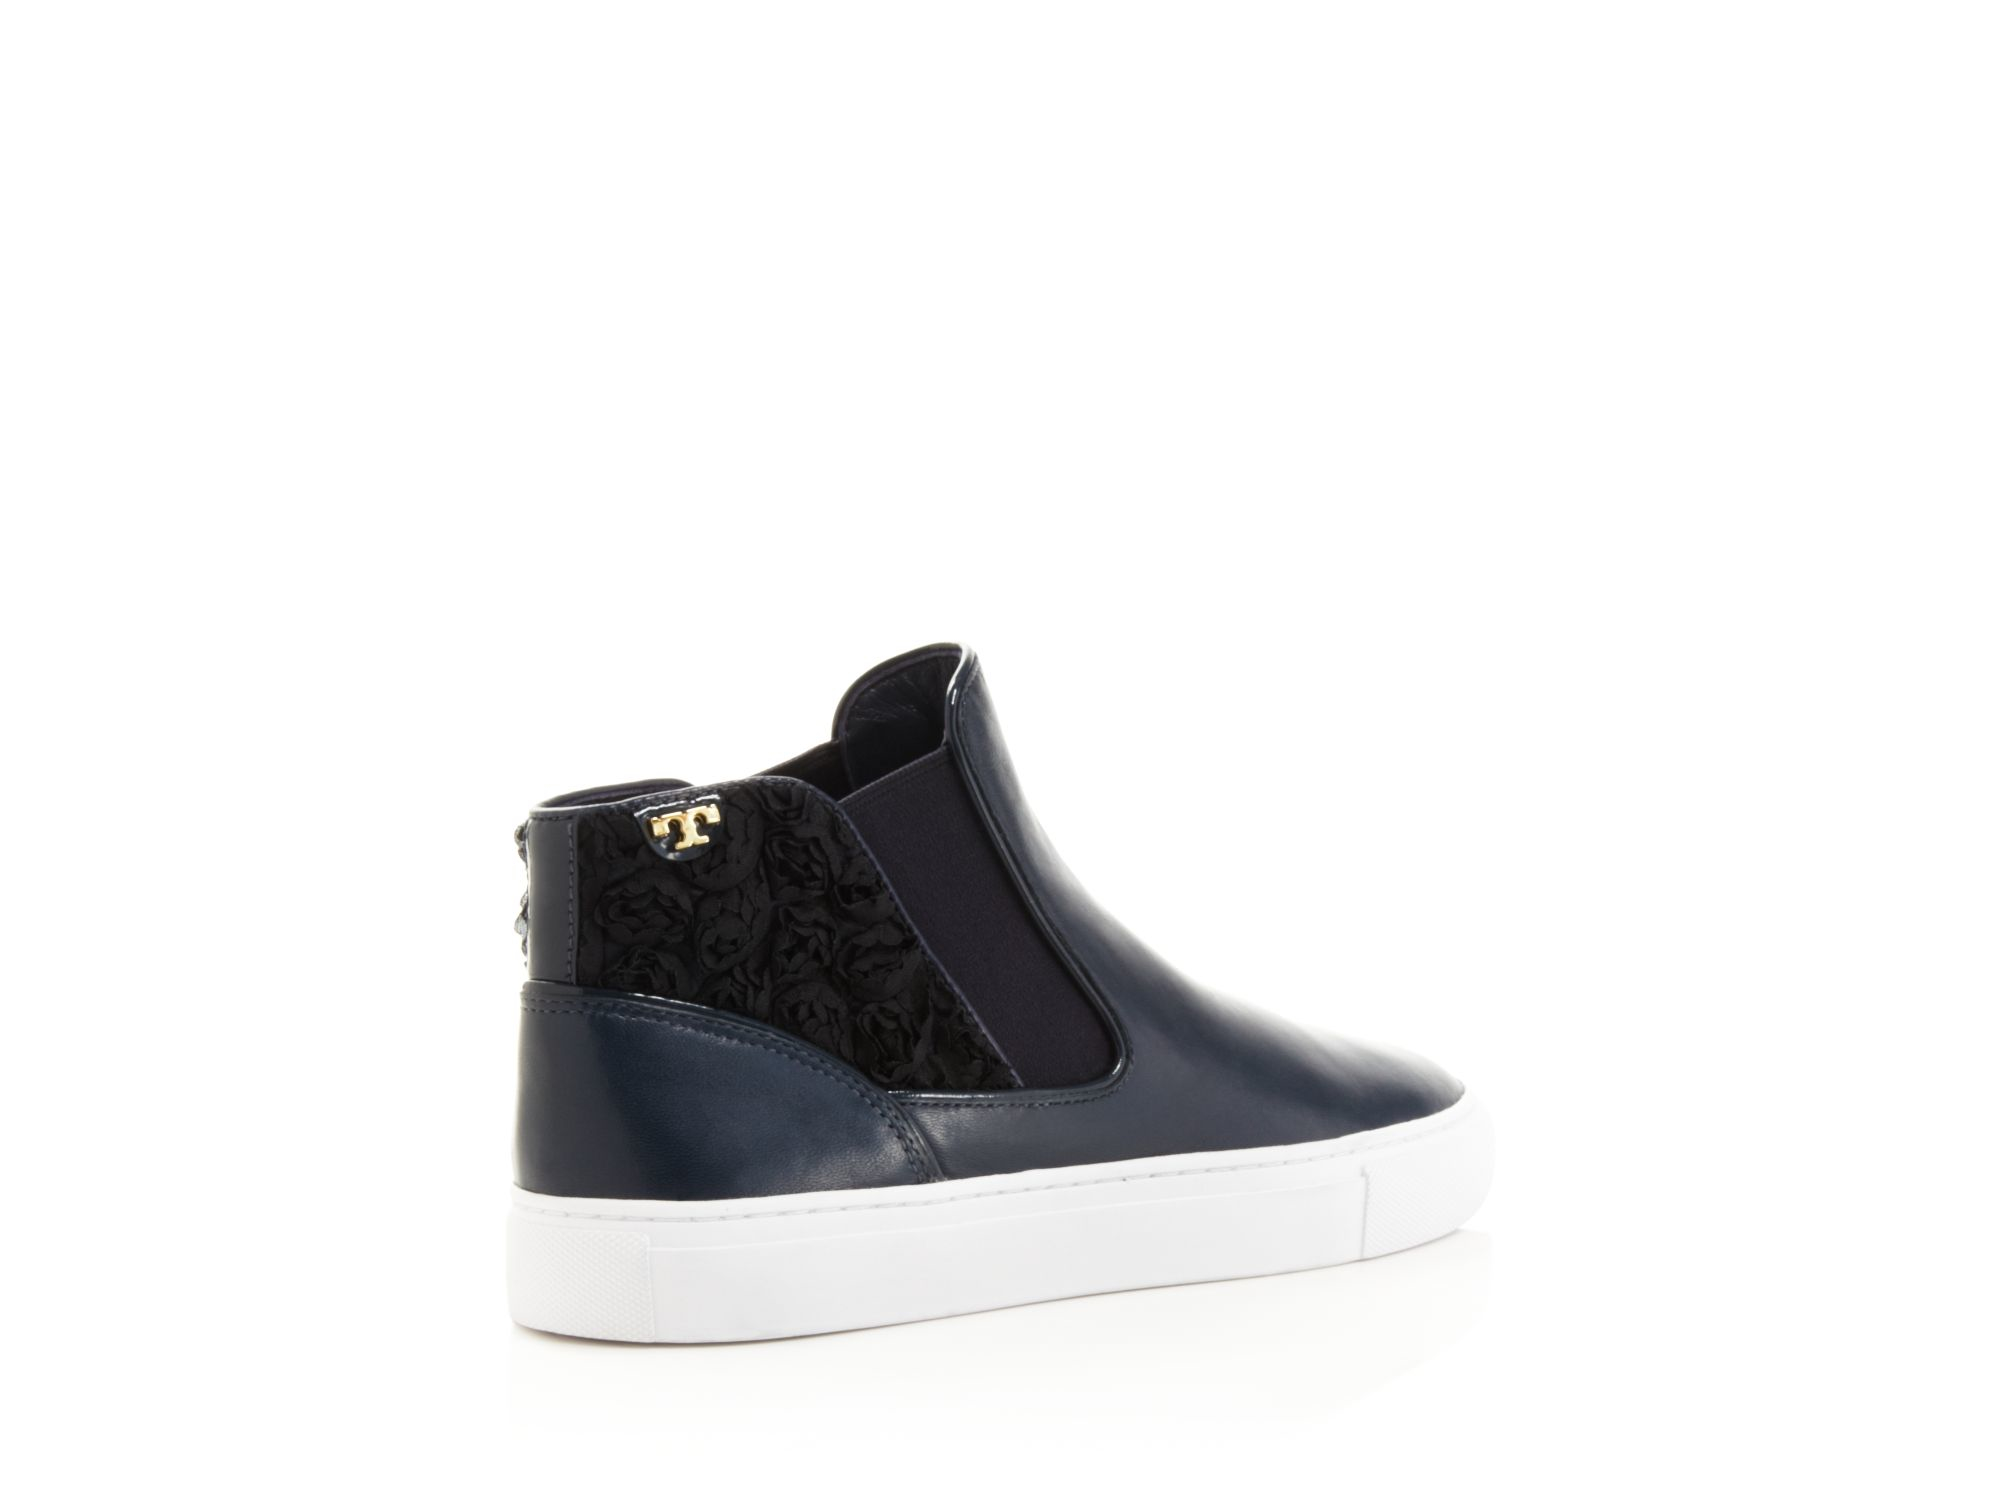 Tory Burch High-Top Slip-On Sneakers discount largest supplier u0rc4e